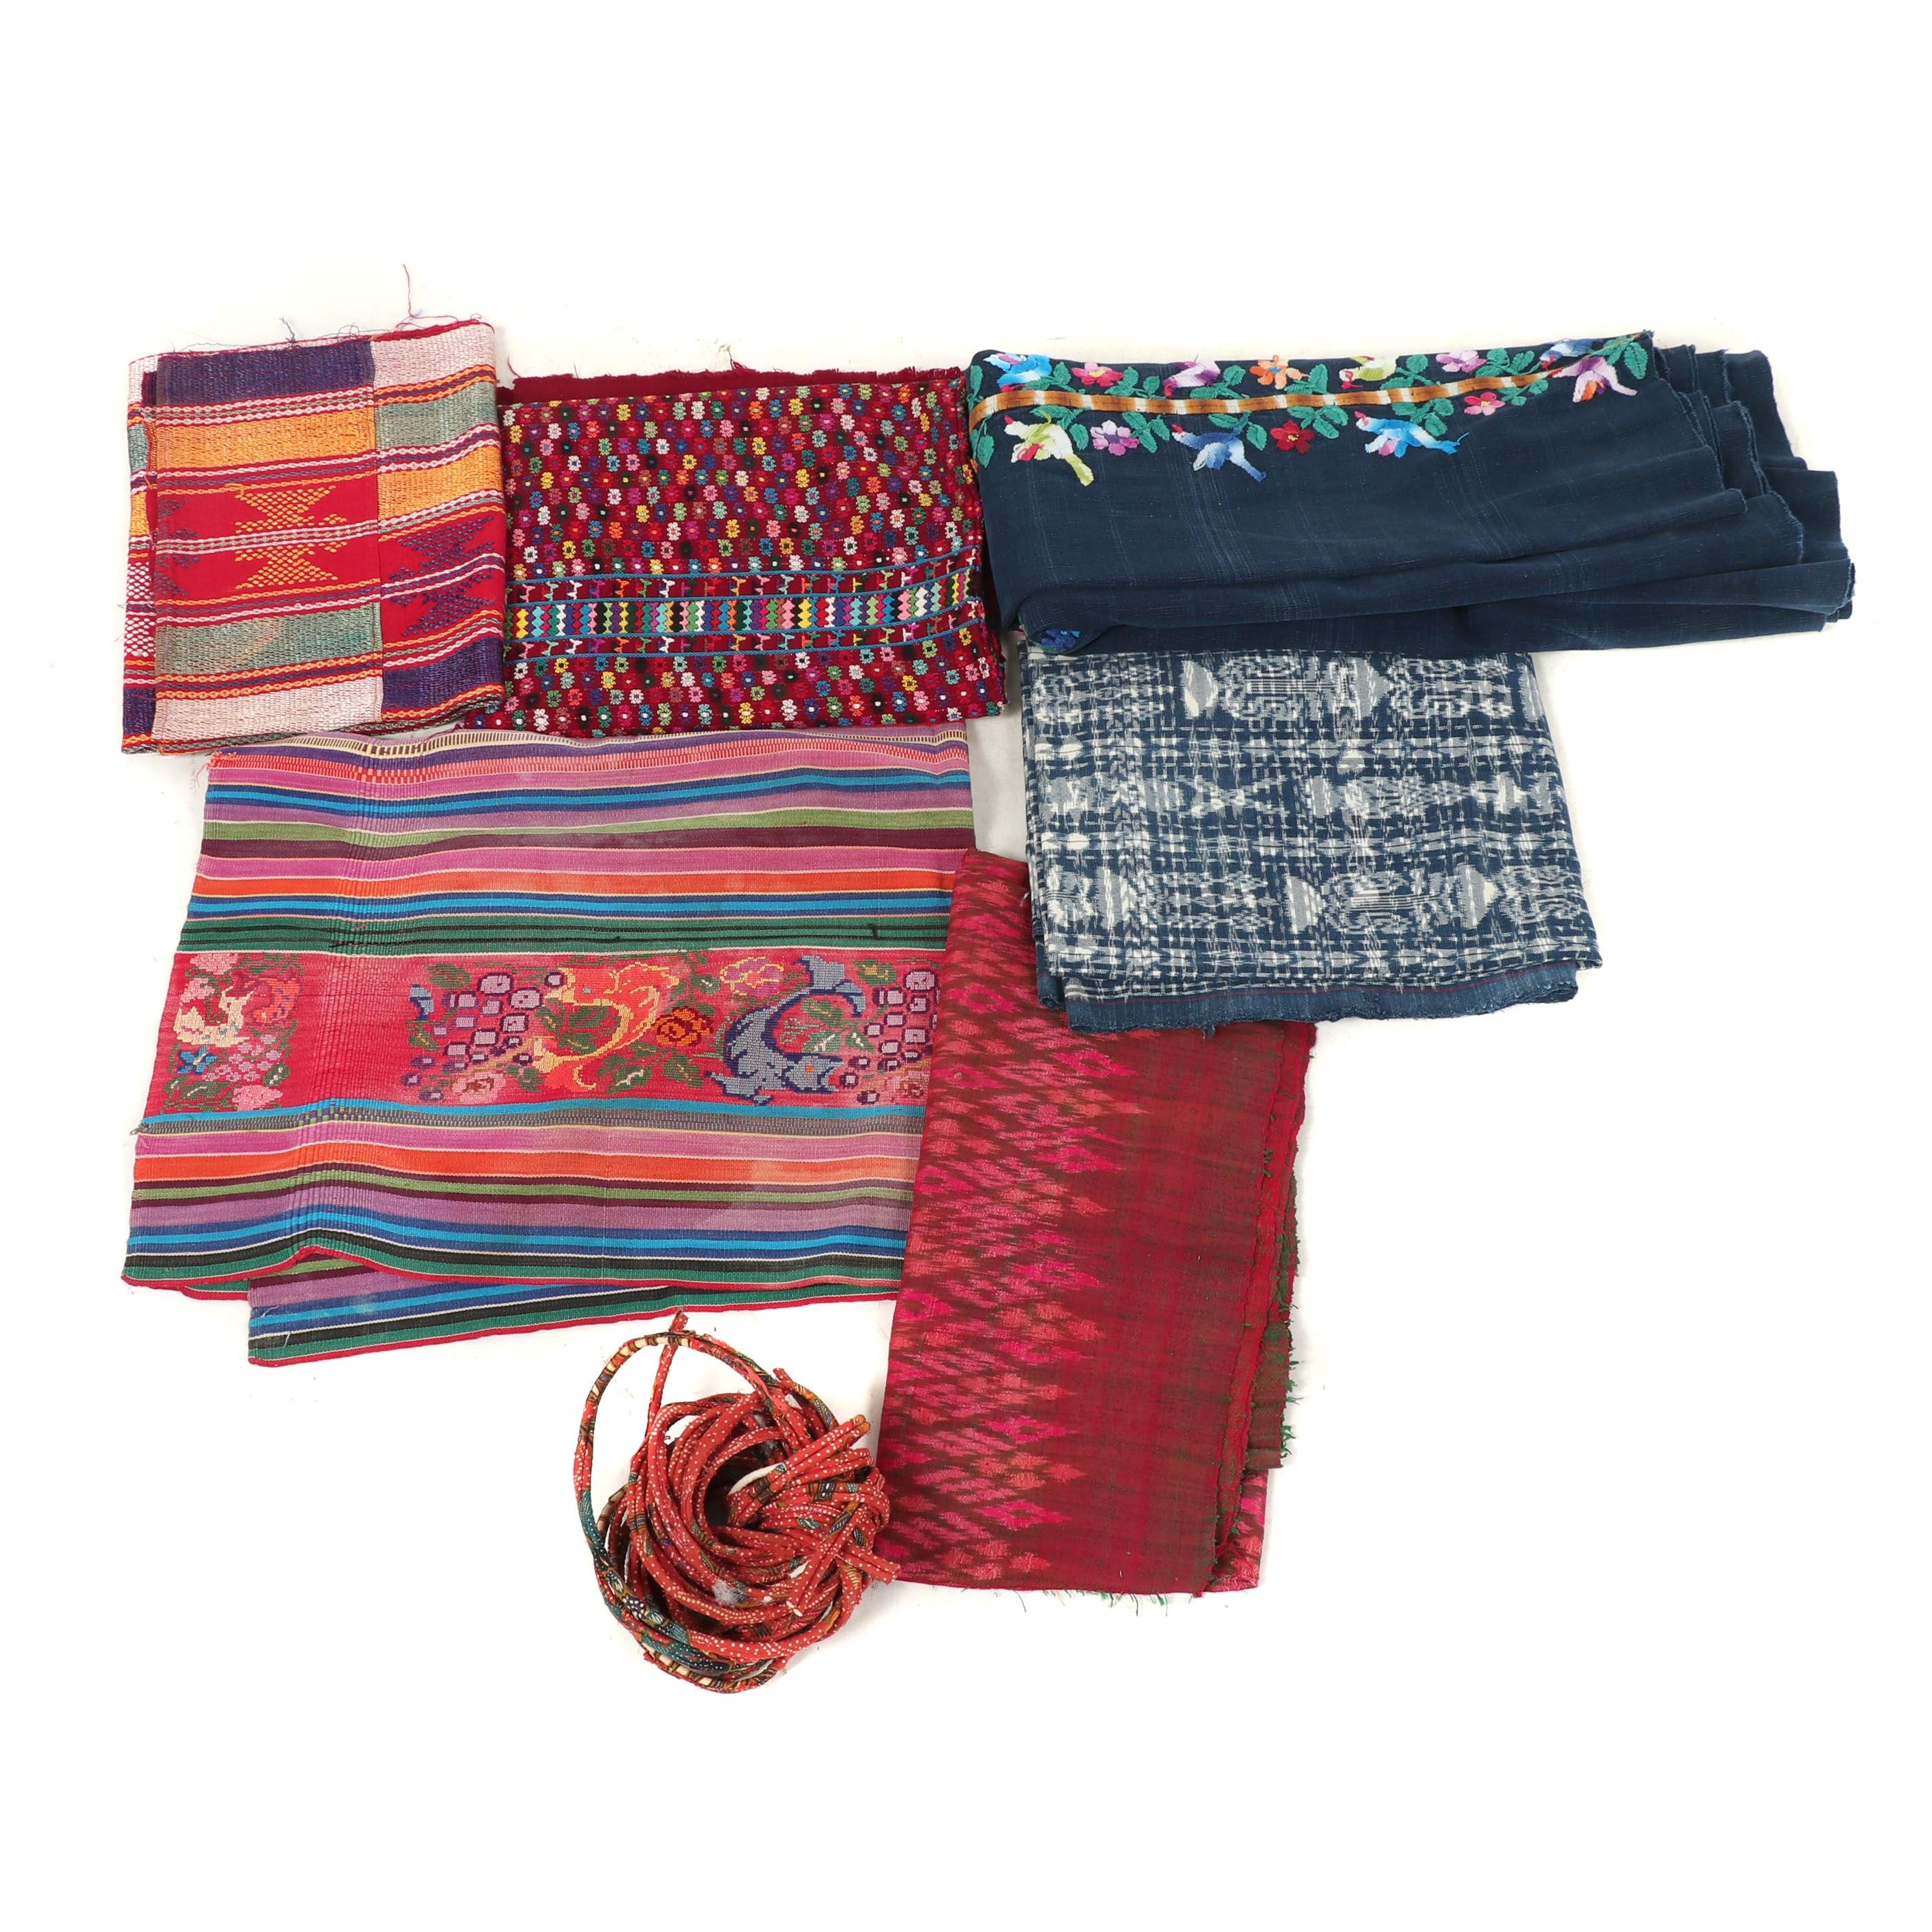 Handwoven Textiles and Embroidered Fabrics